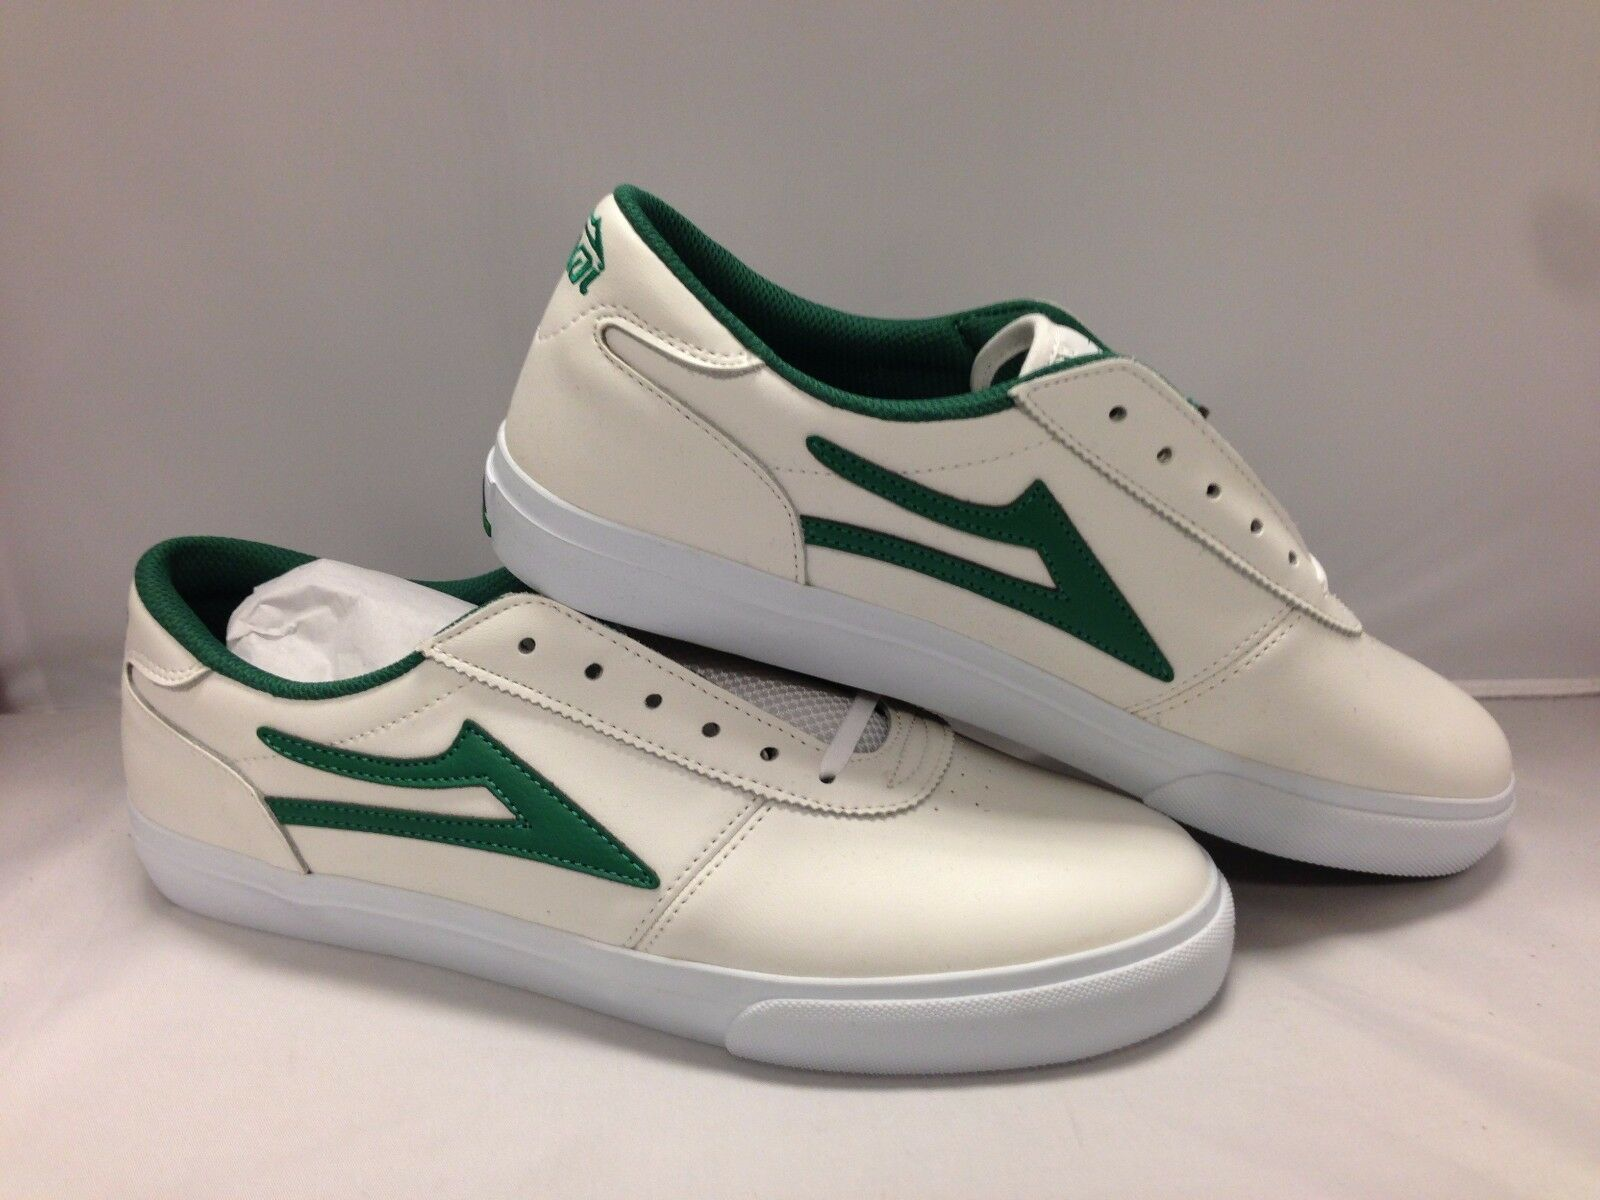 Lakai Men's shoes Manchester''--White Green Leather